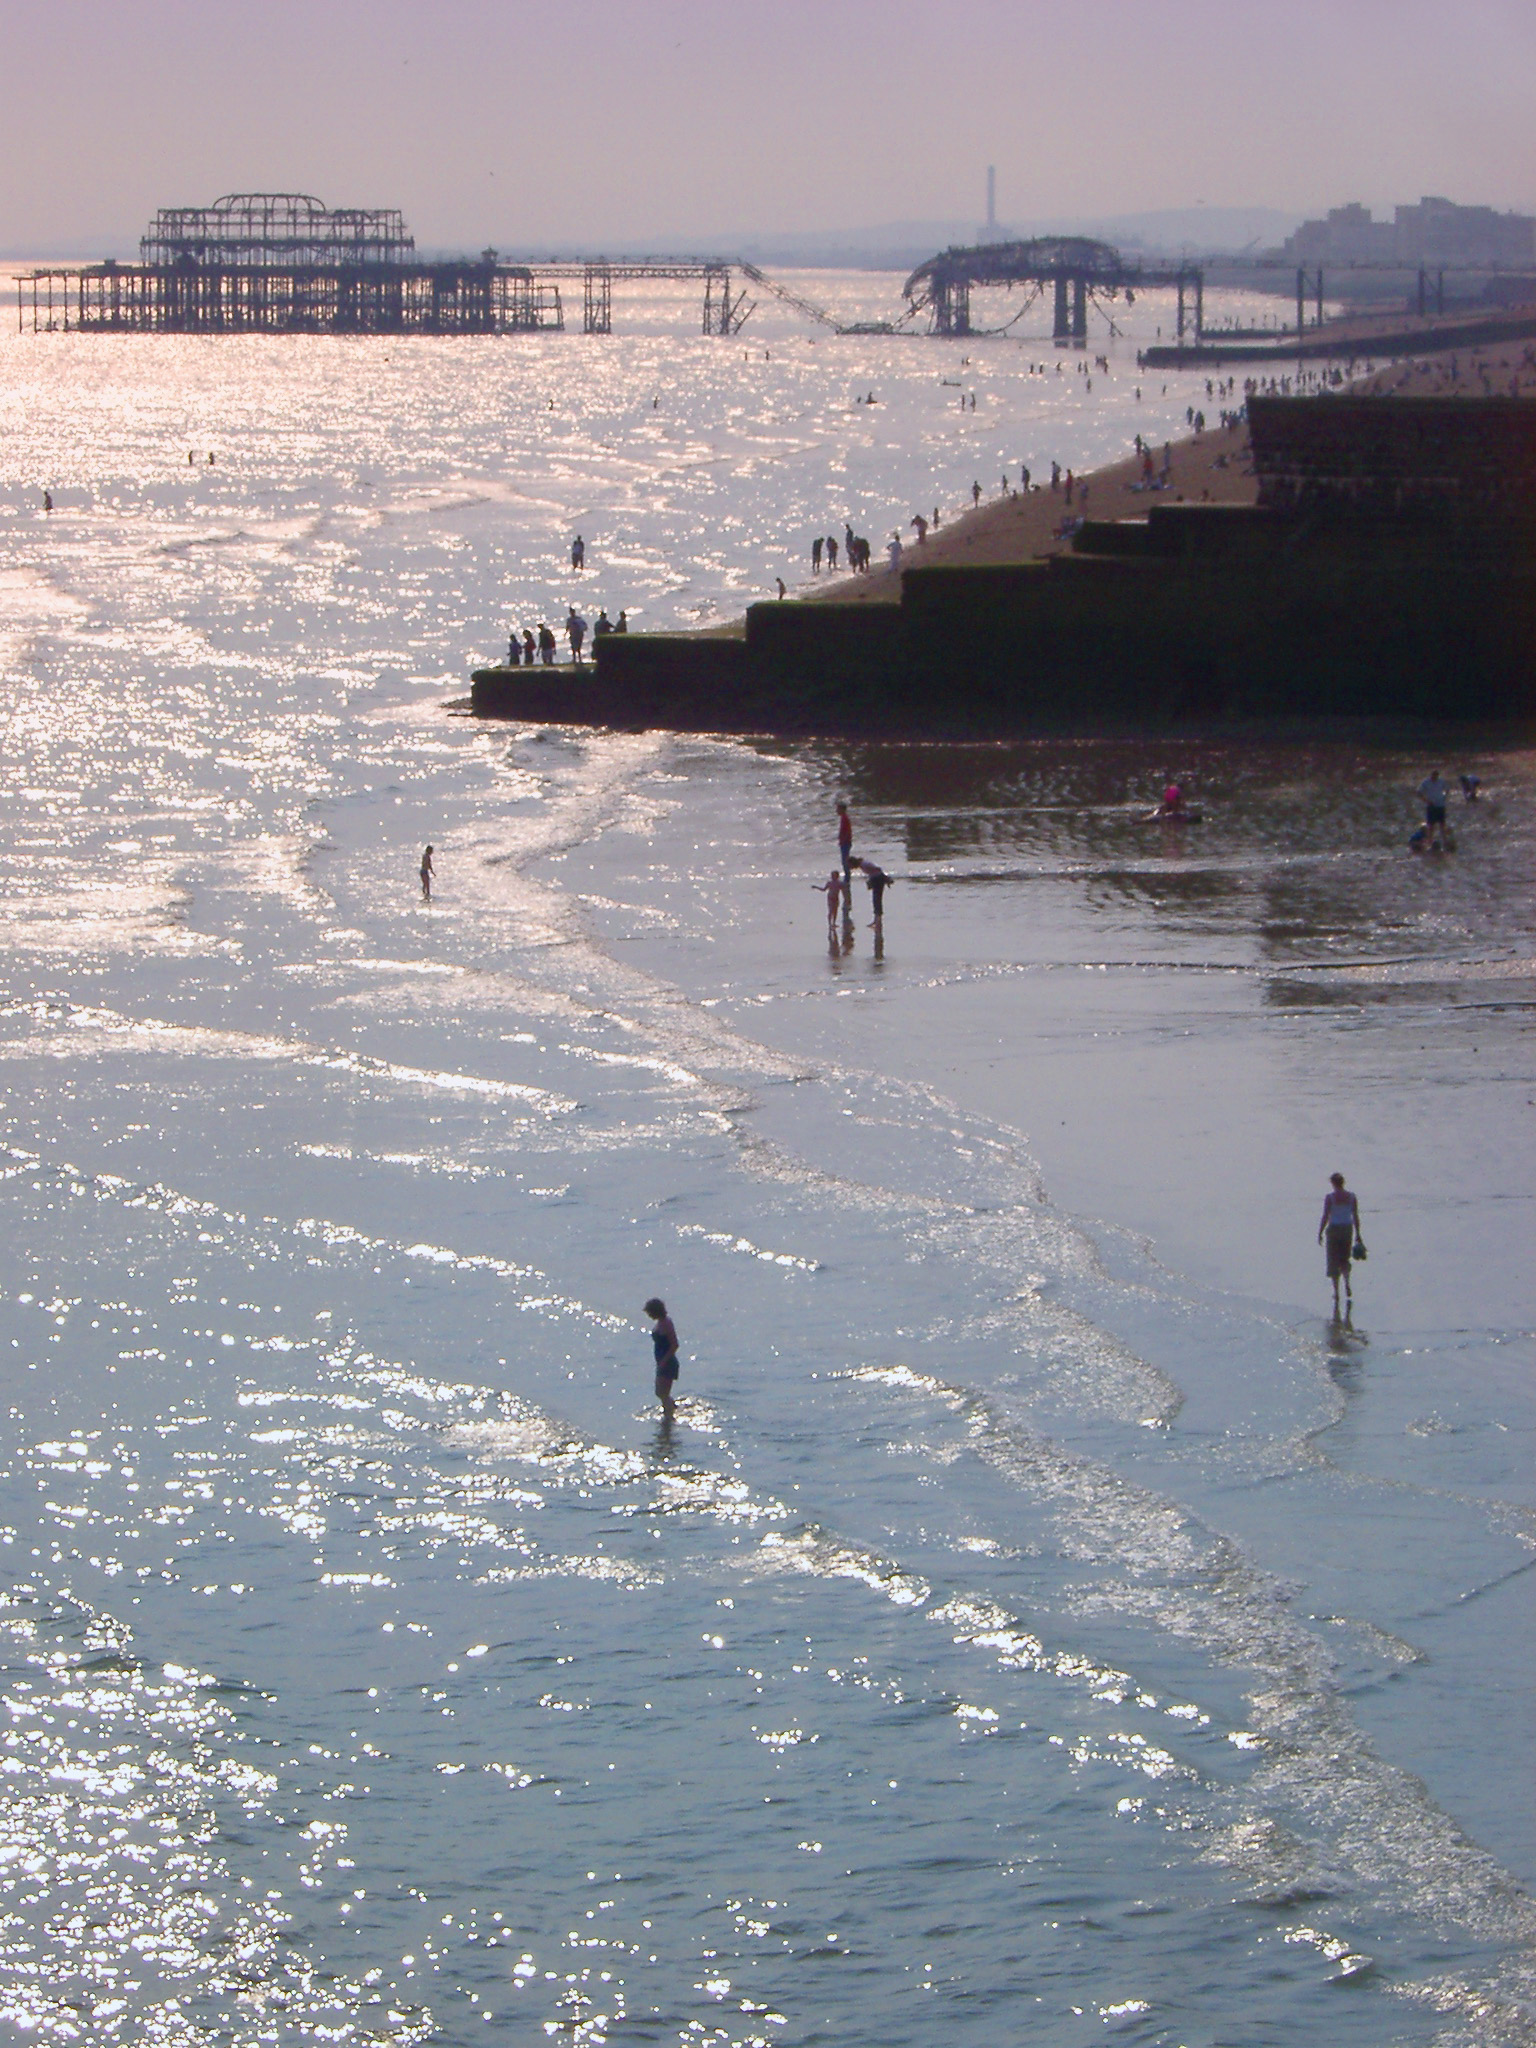 People paddling at Brighton beach with the remnants of the burnt out historical pier visible behind them on a warm summers